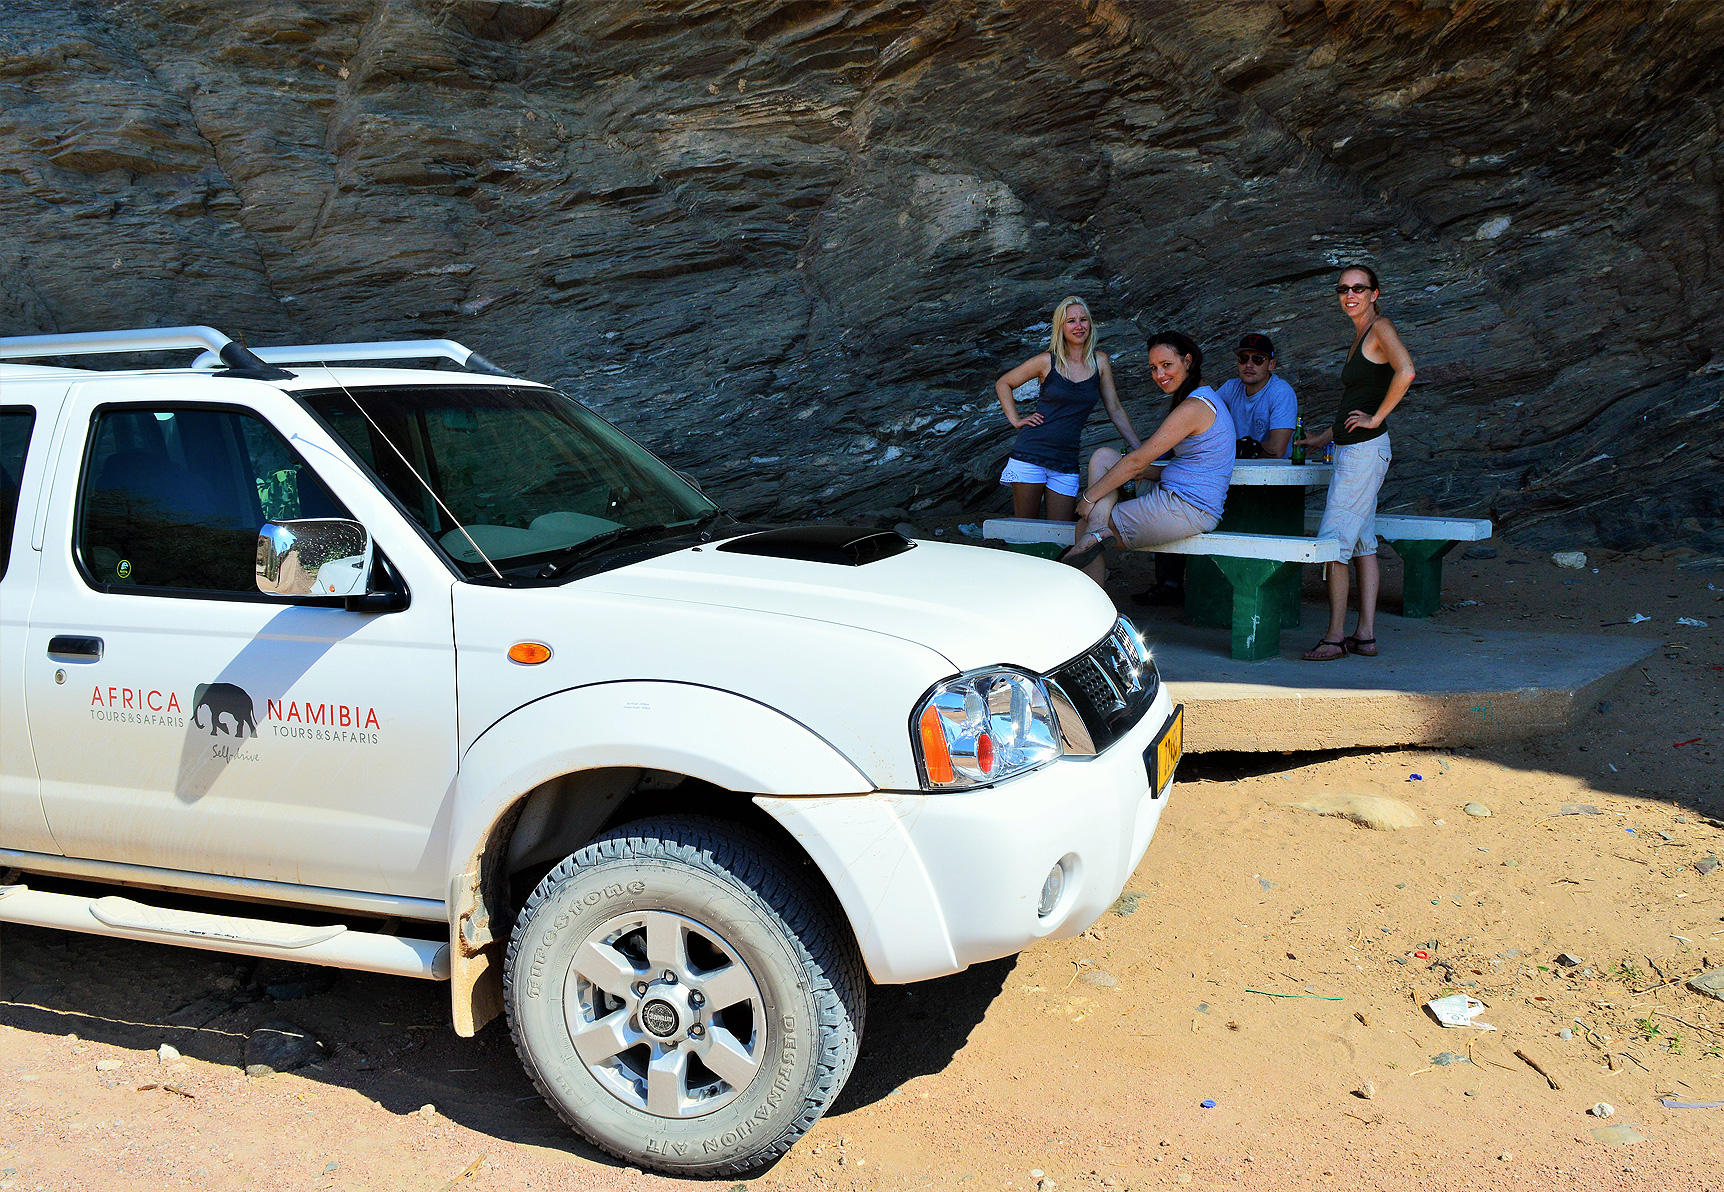 Self-drive Tours Namibia inline image 5bf2b36655d03